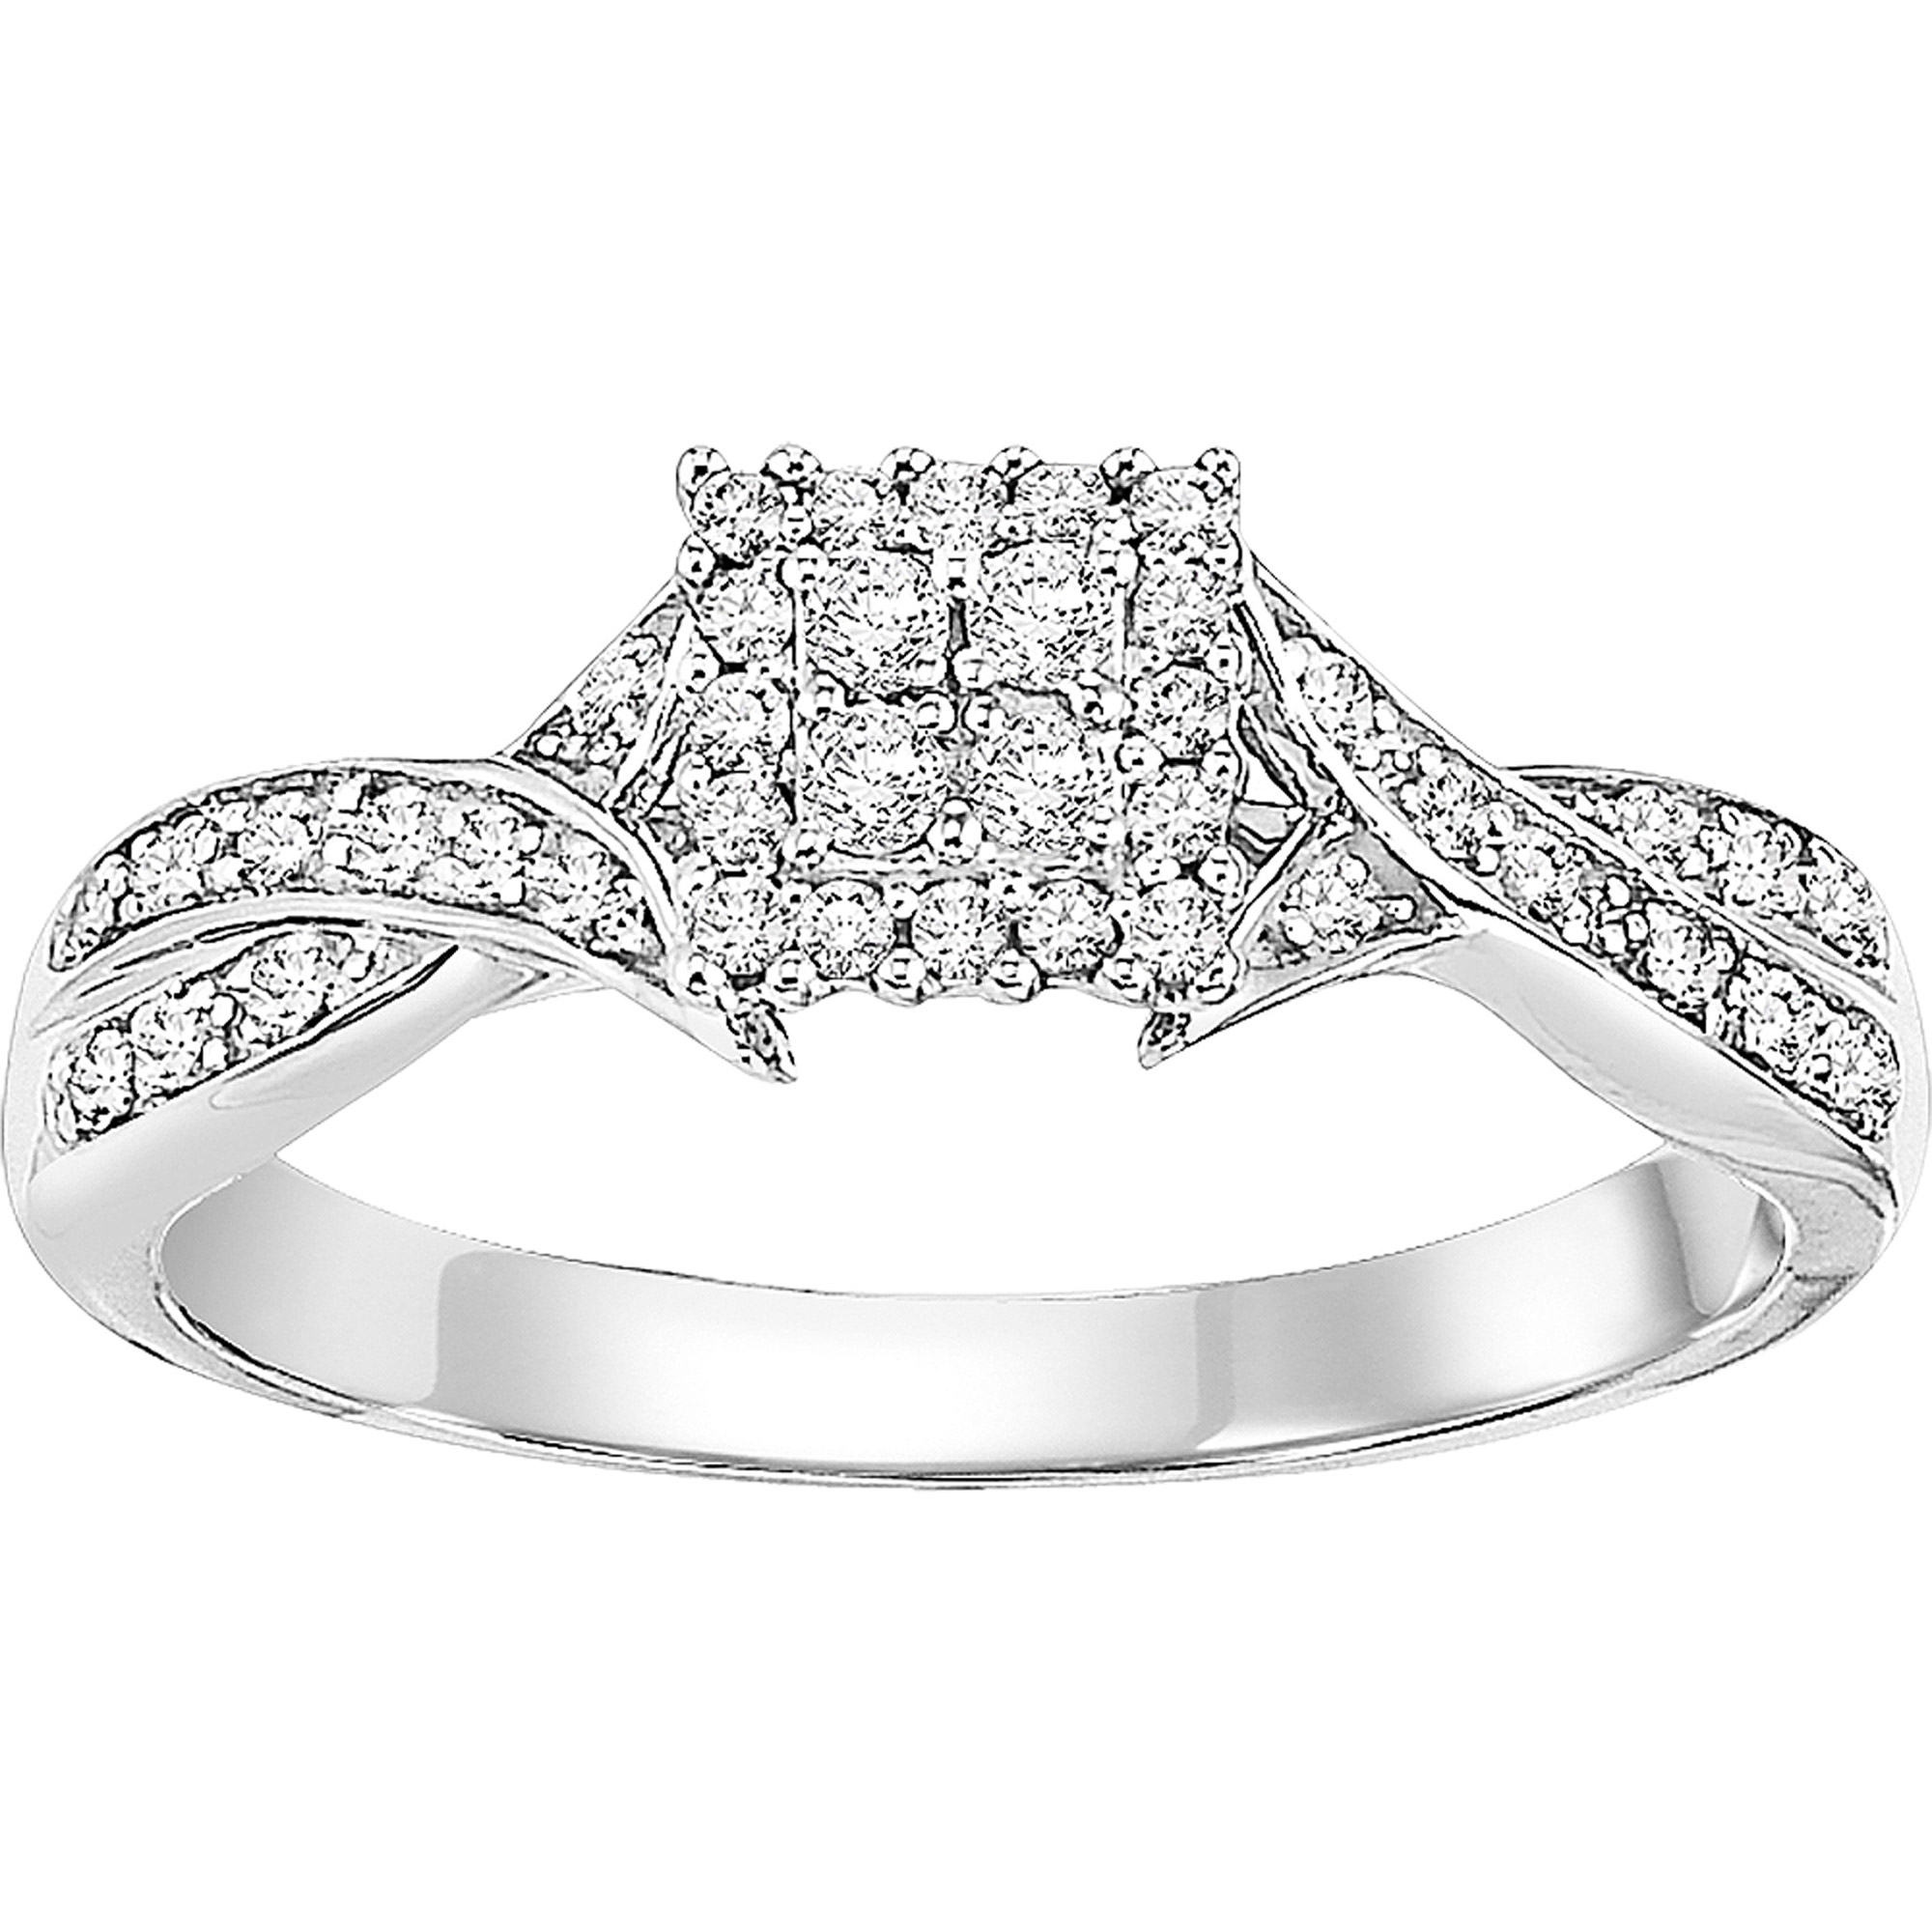 Keepsake Fortunate 1/4 CT. T.W. Diamond 10kt White Gold Ring